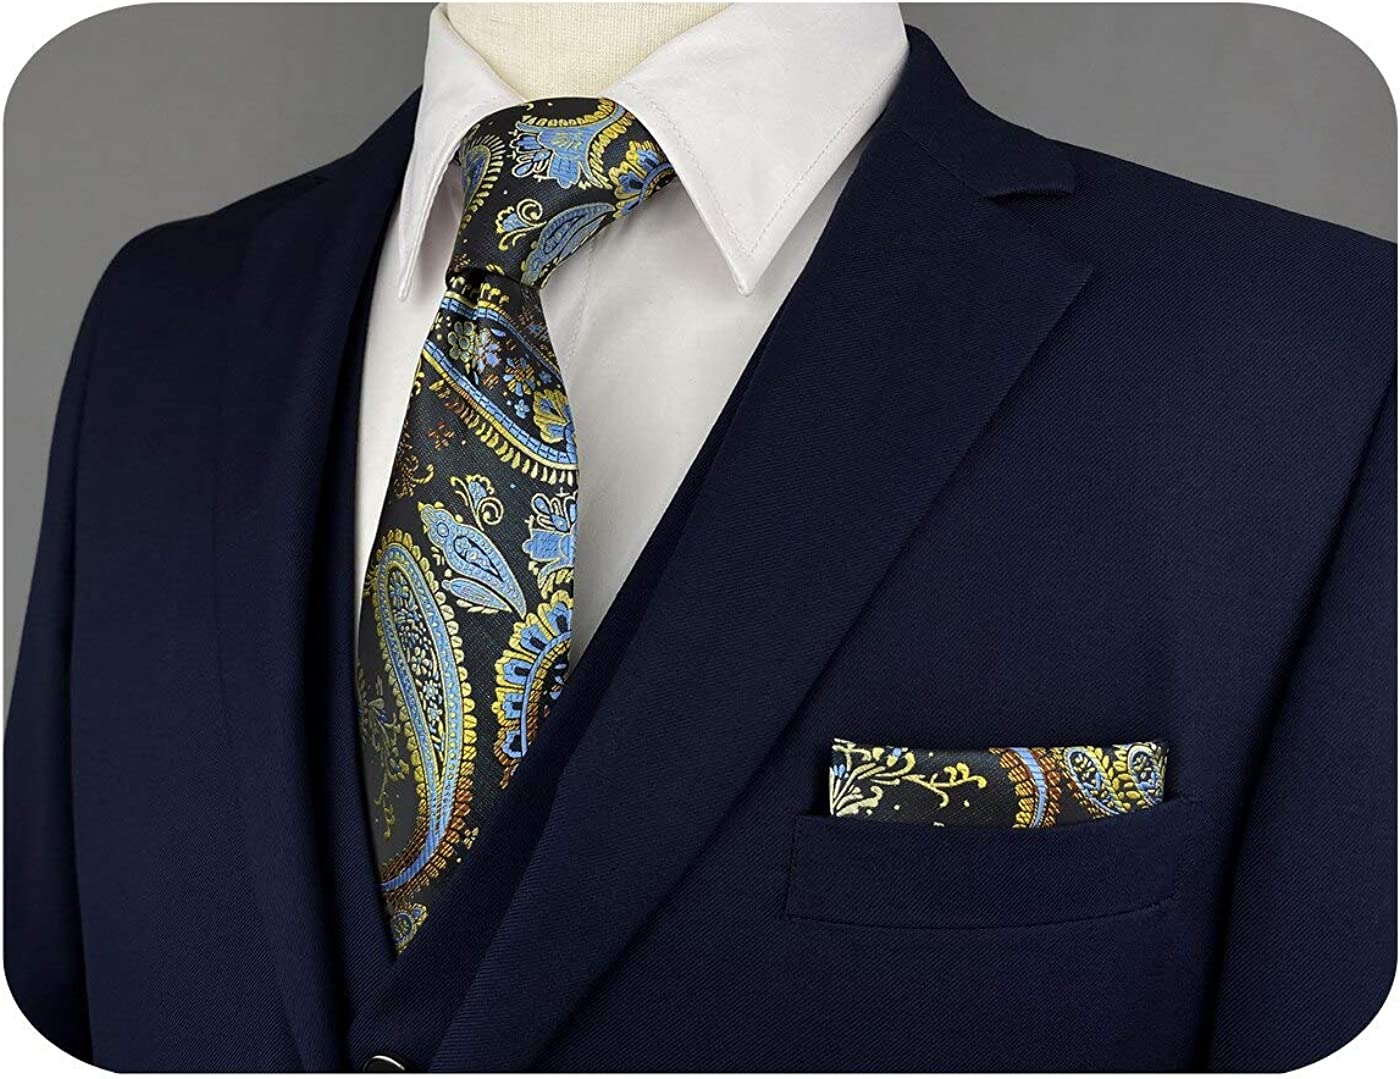 S&W SHLAX&WING Mens Ties Silk Black and Neckties for Men Paisley